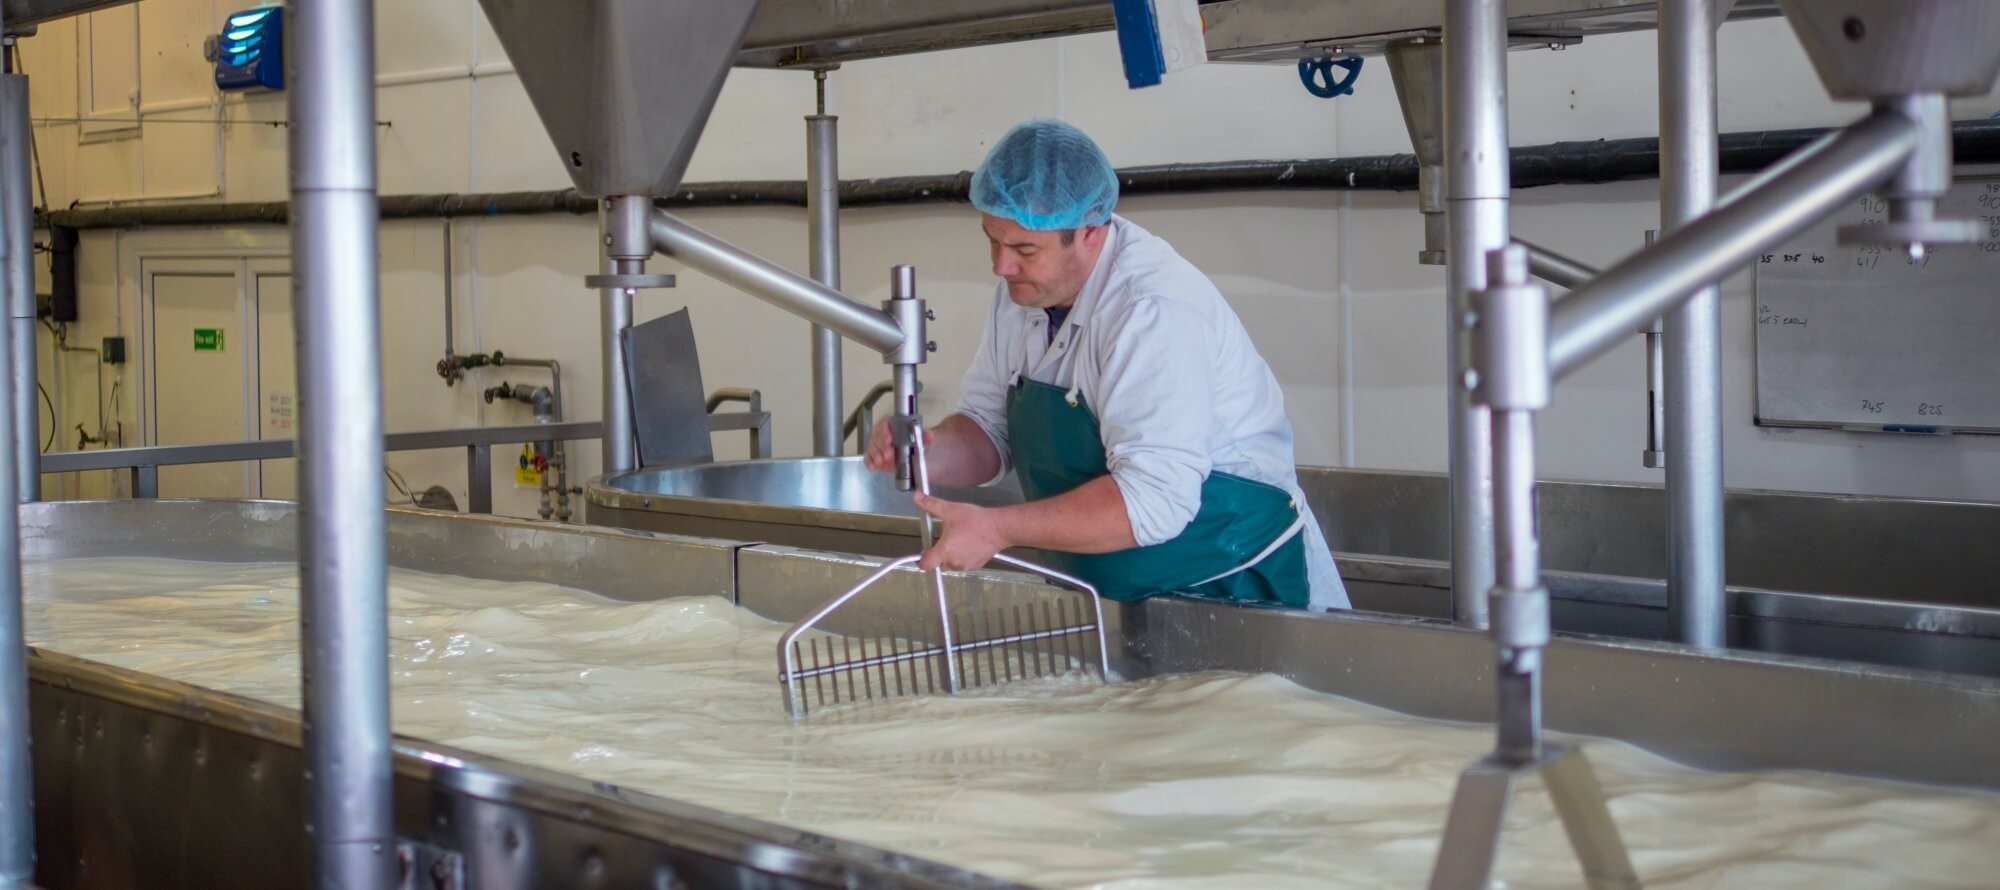 Food Processing Safety Boots.jpg